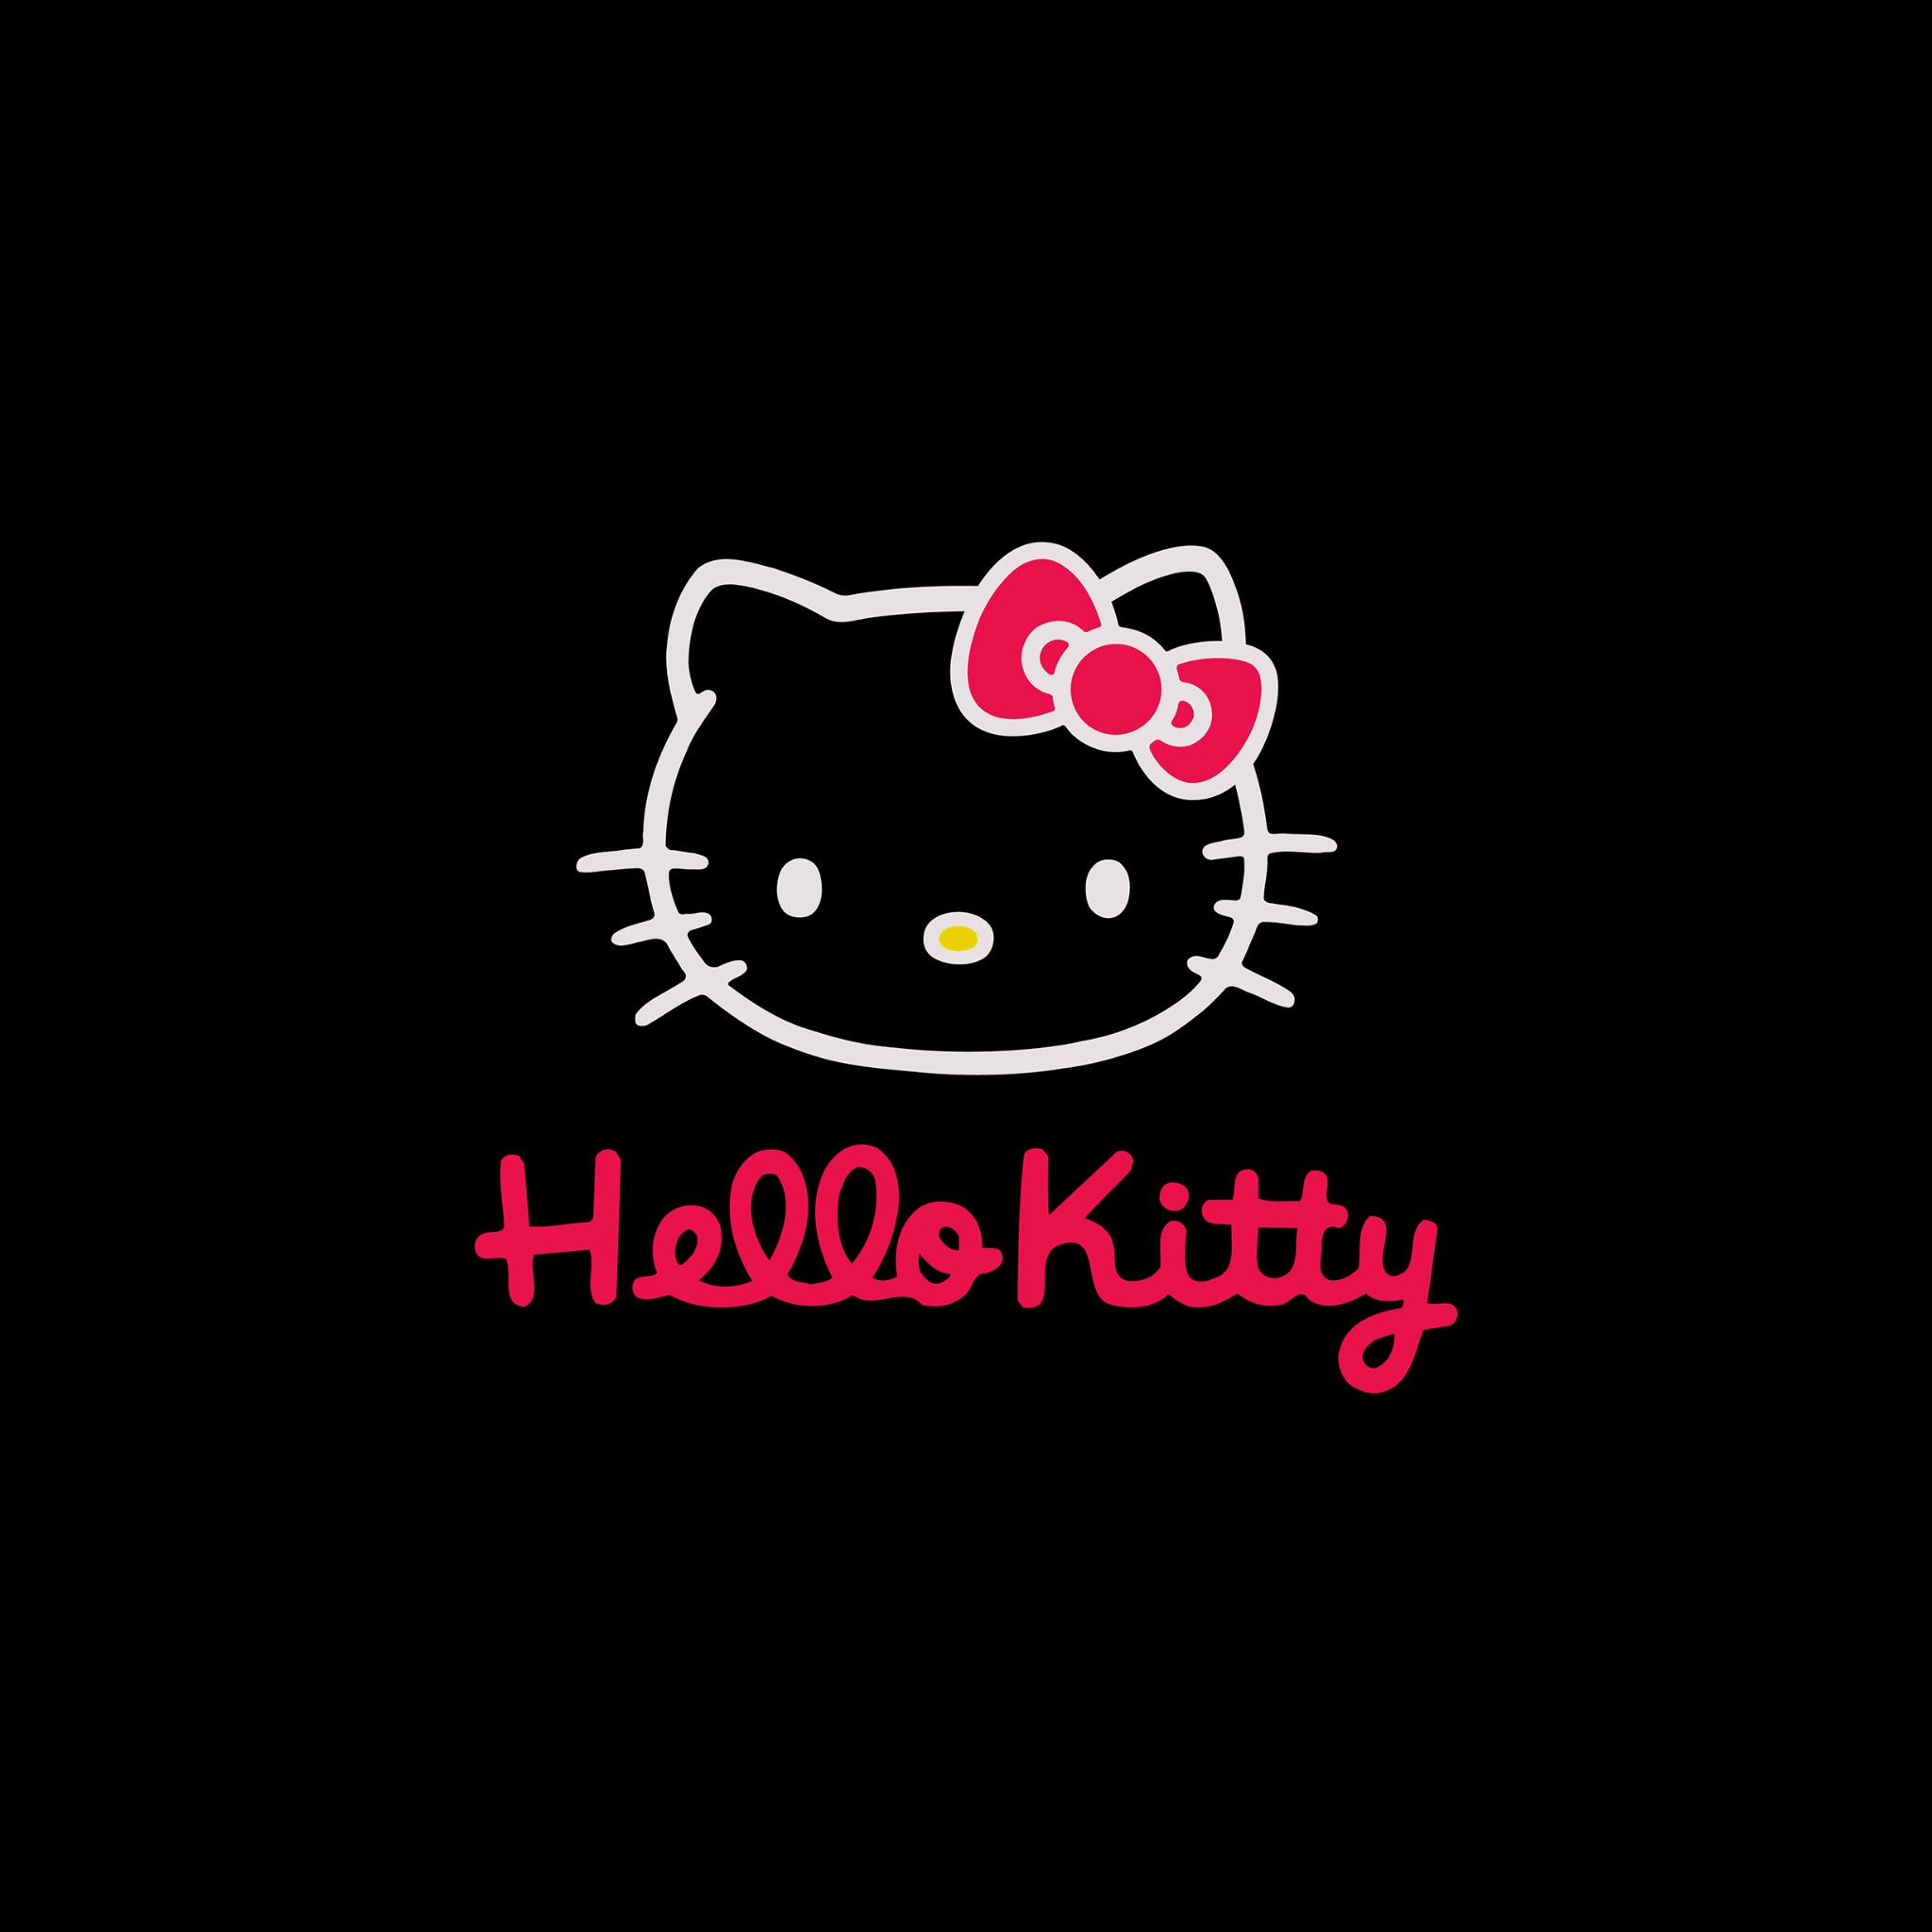 Hello Kitty Dark - Tap to see more cute hello kitty wallpapers! - @mobile9